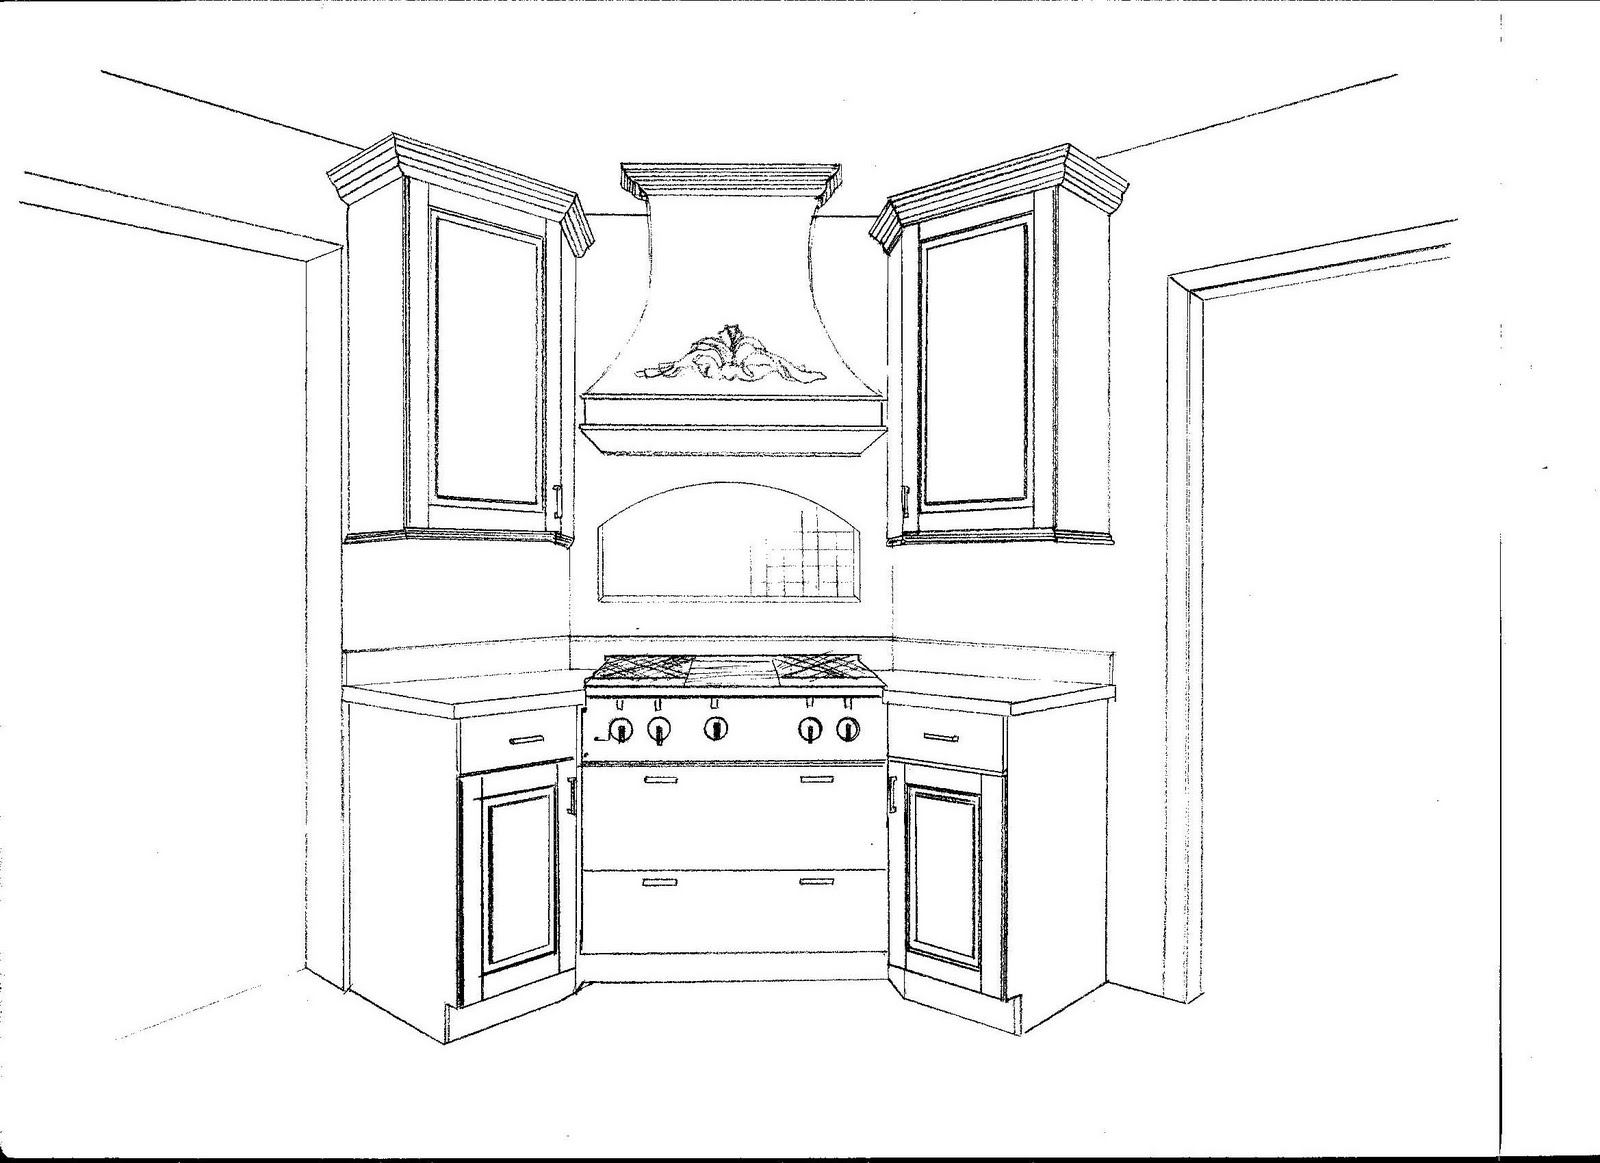 Jane's Home: Plans: Kitchen Renderings